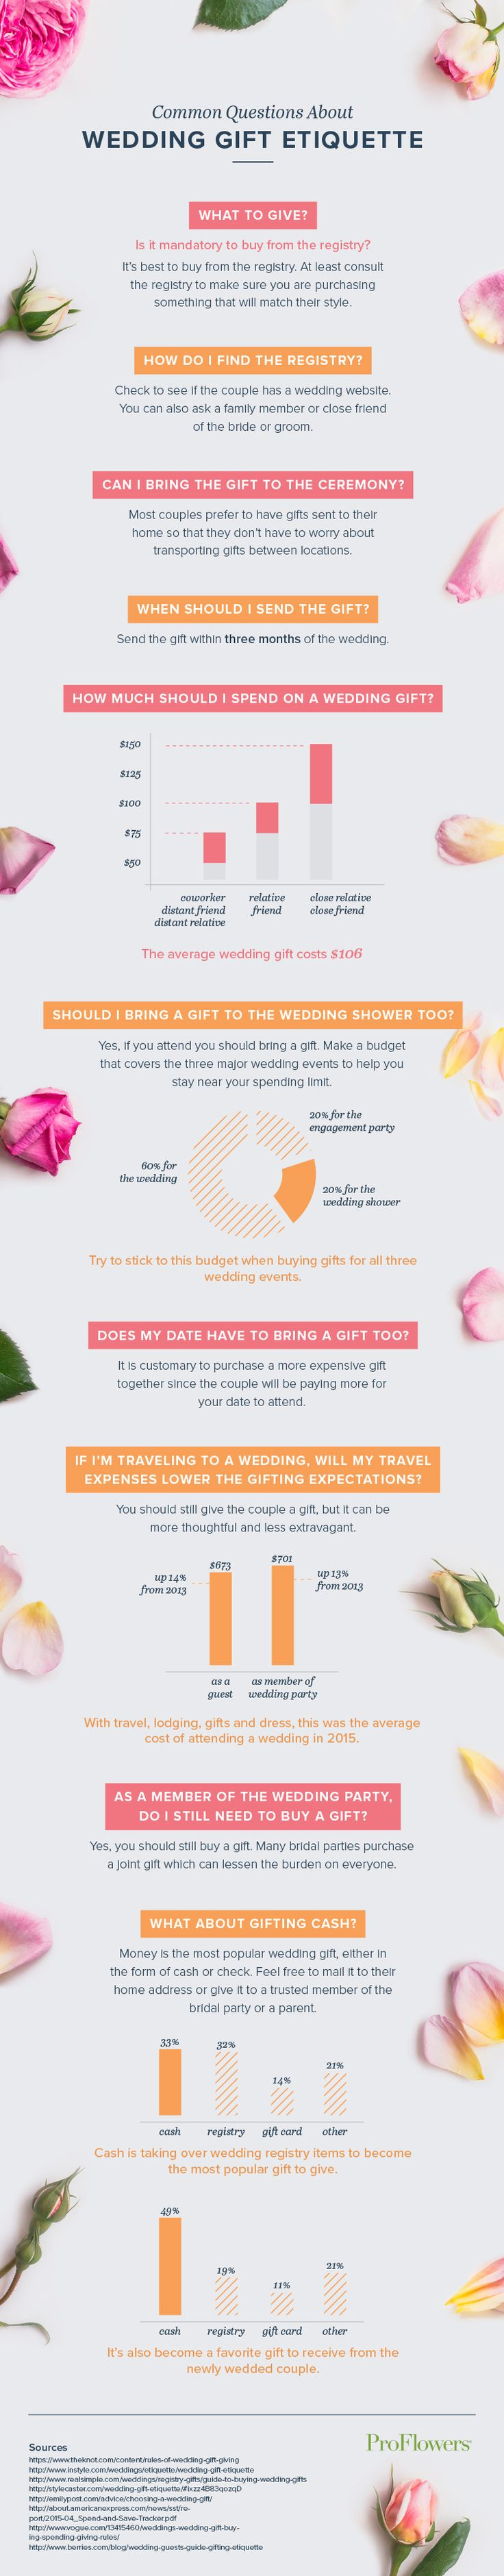 Wedding Gift Etiquette 10 Essential Tips Every Guest Should Know